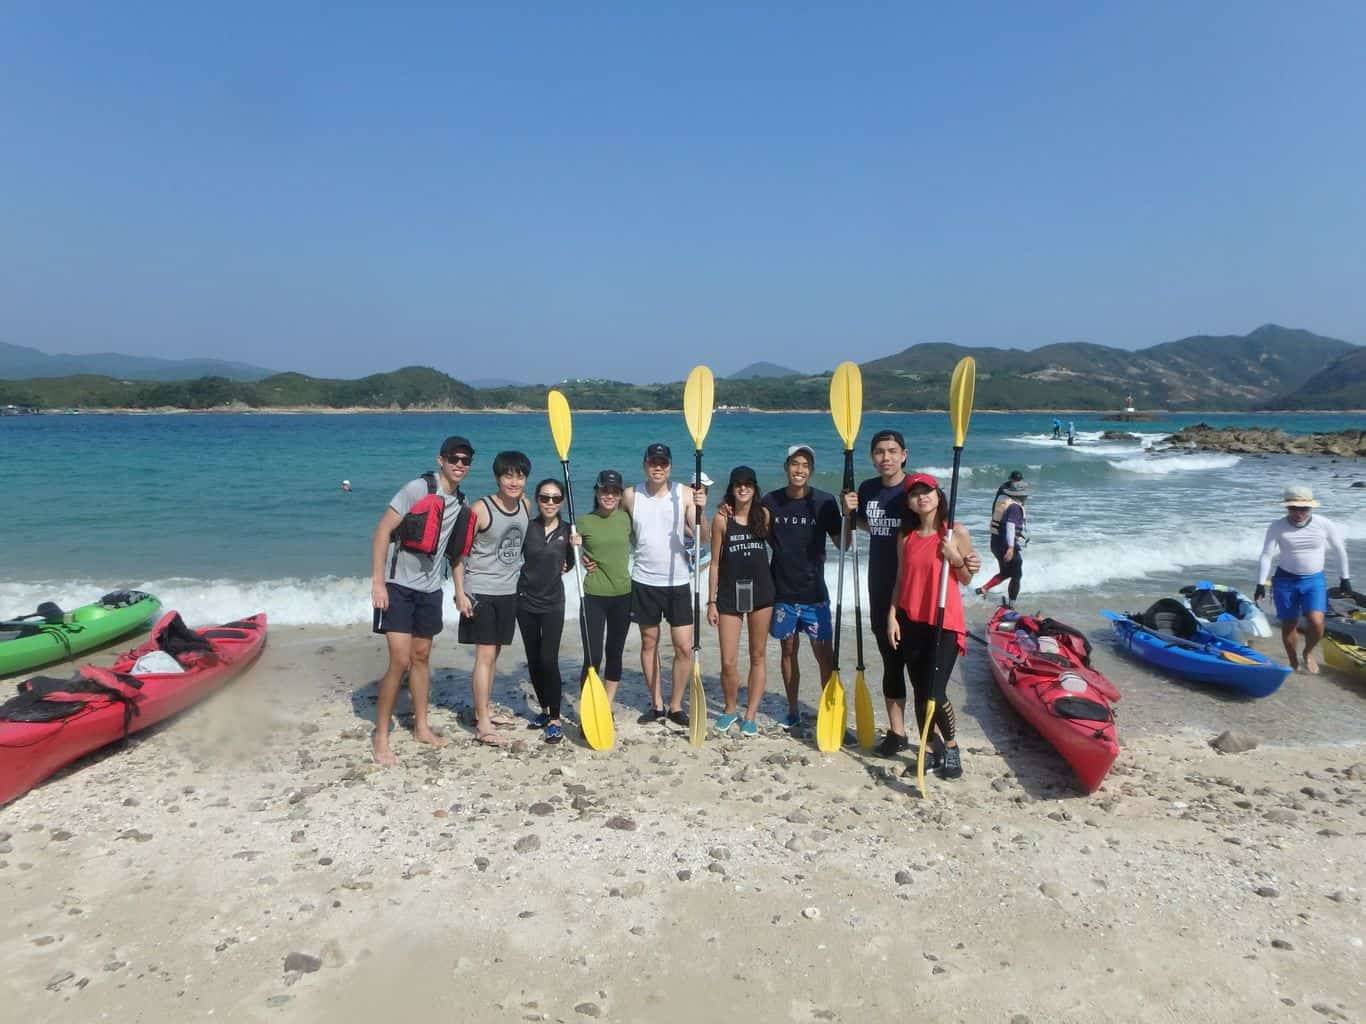 UNESCO Global Geopark Hong Kong, Sharp Island sea kayaking